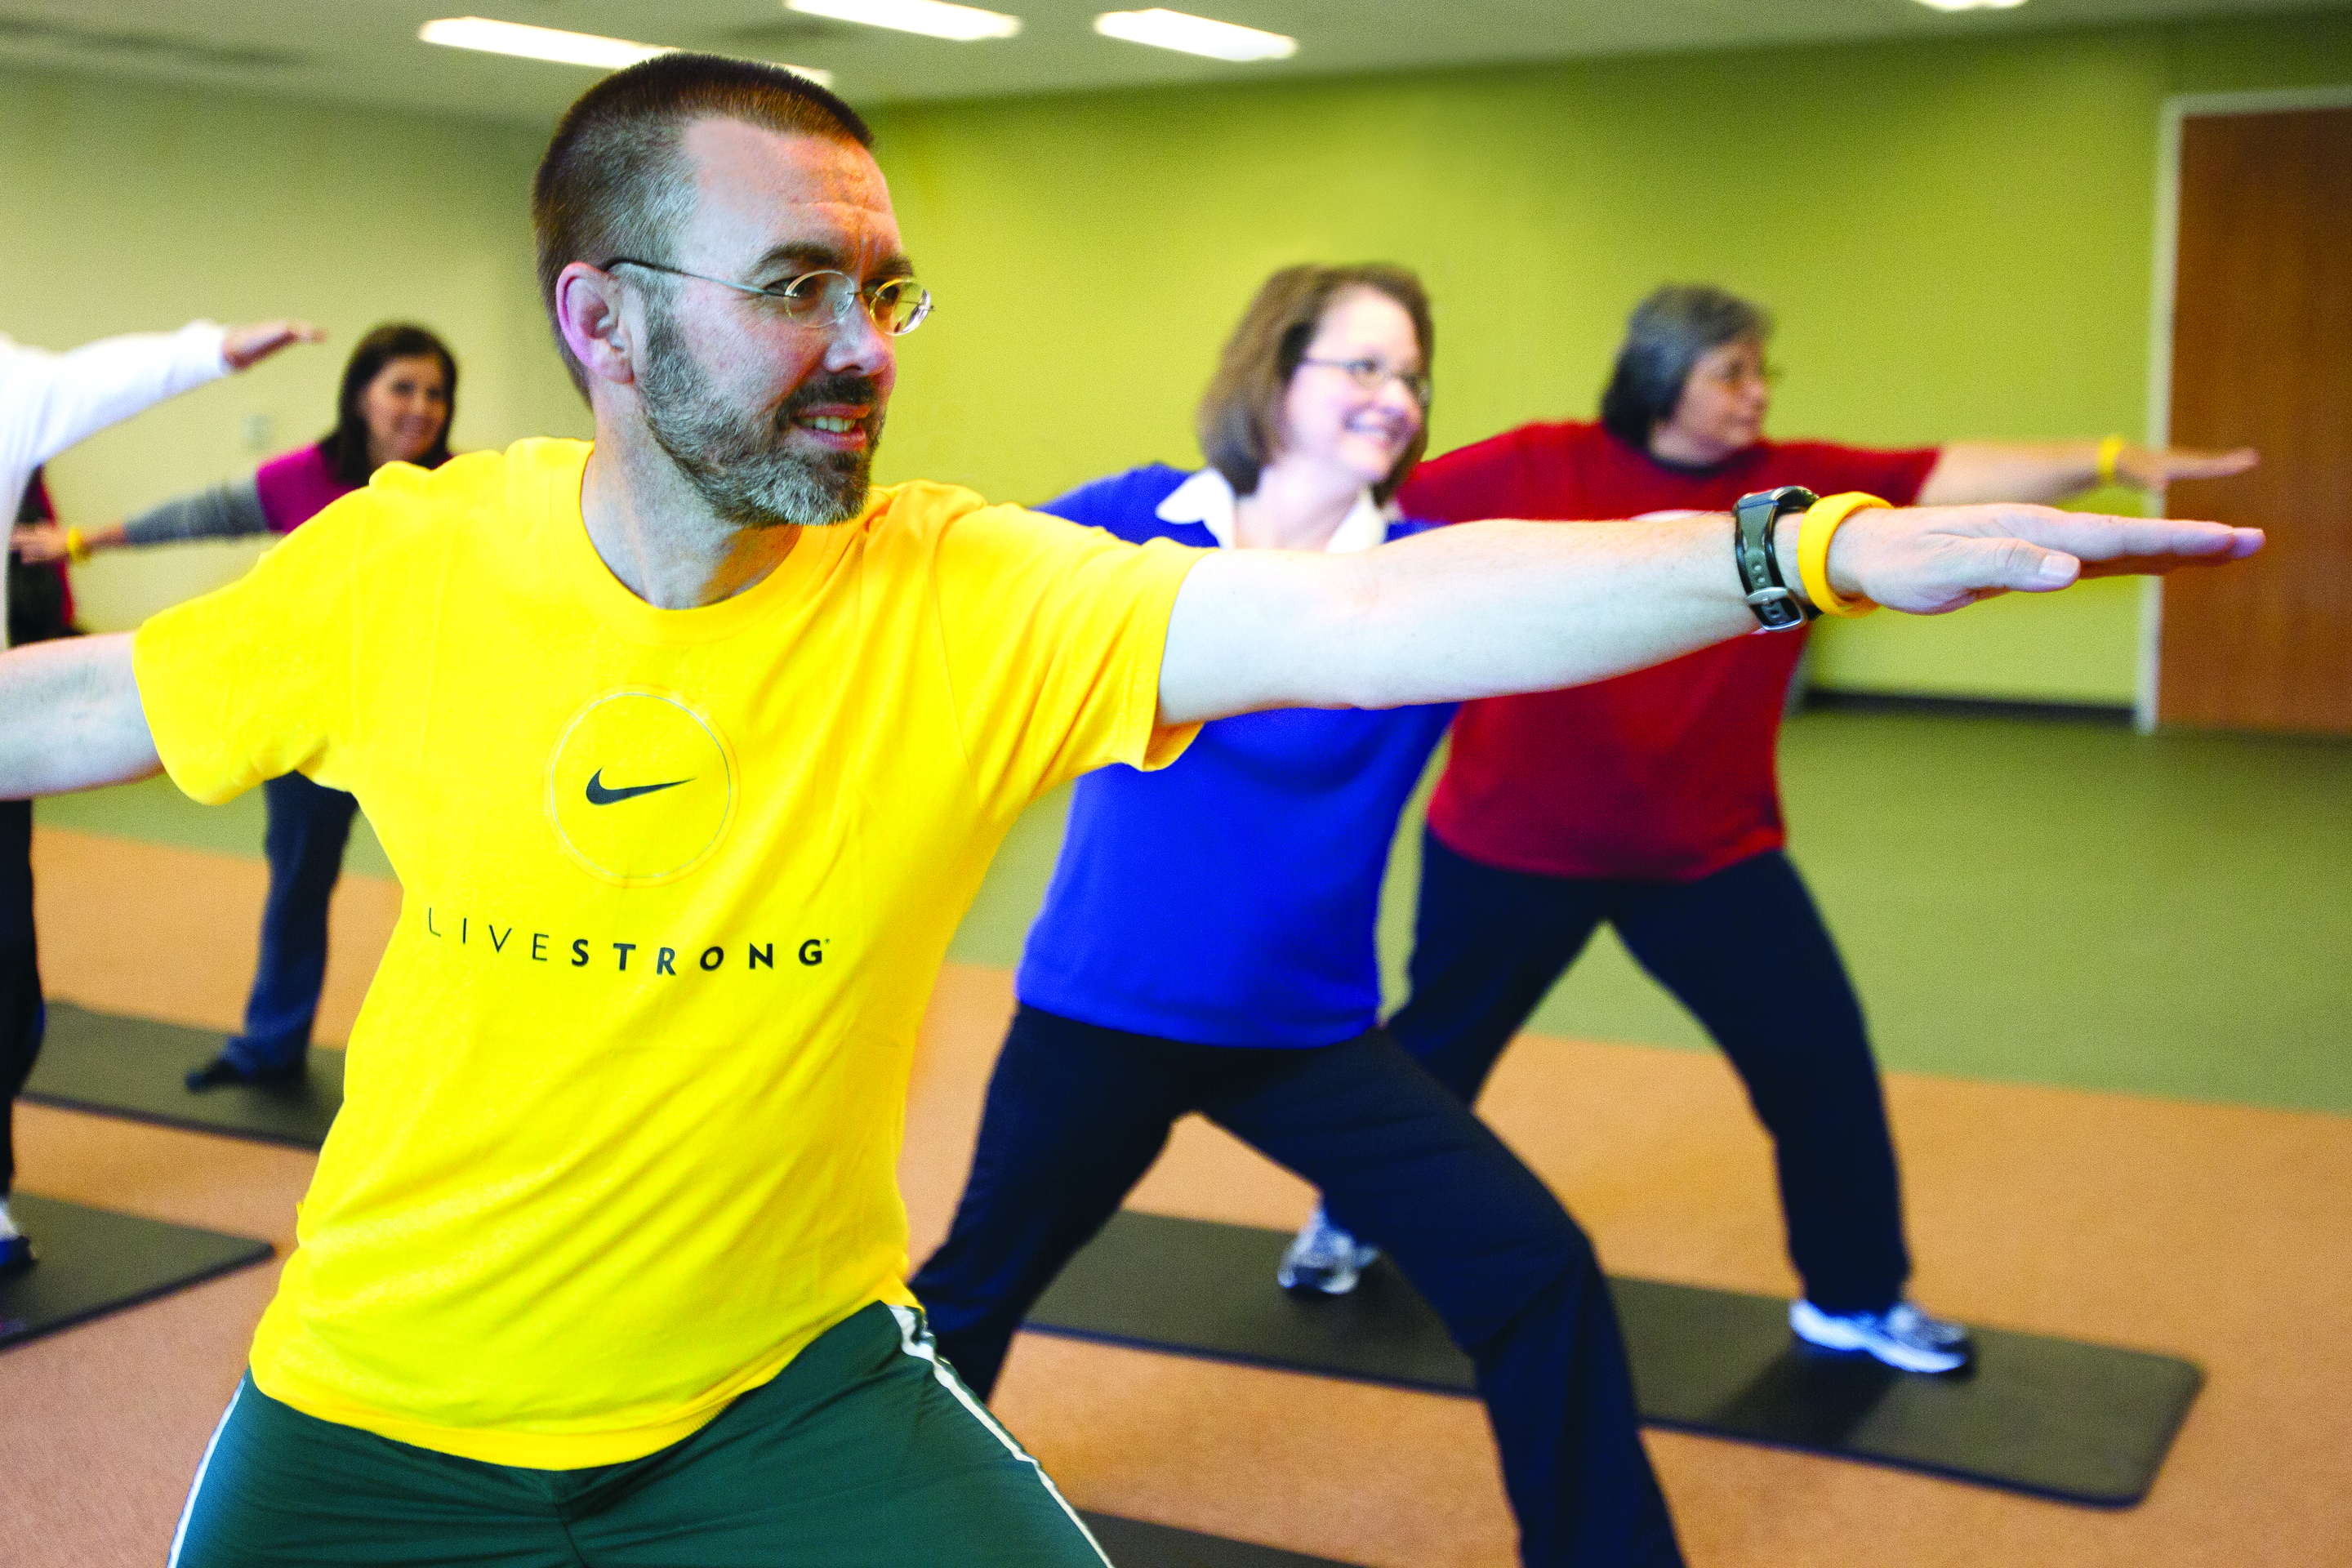 A group of adults doing yoga, one in a bright yellow LIVESTRONG shirt